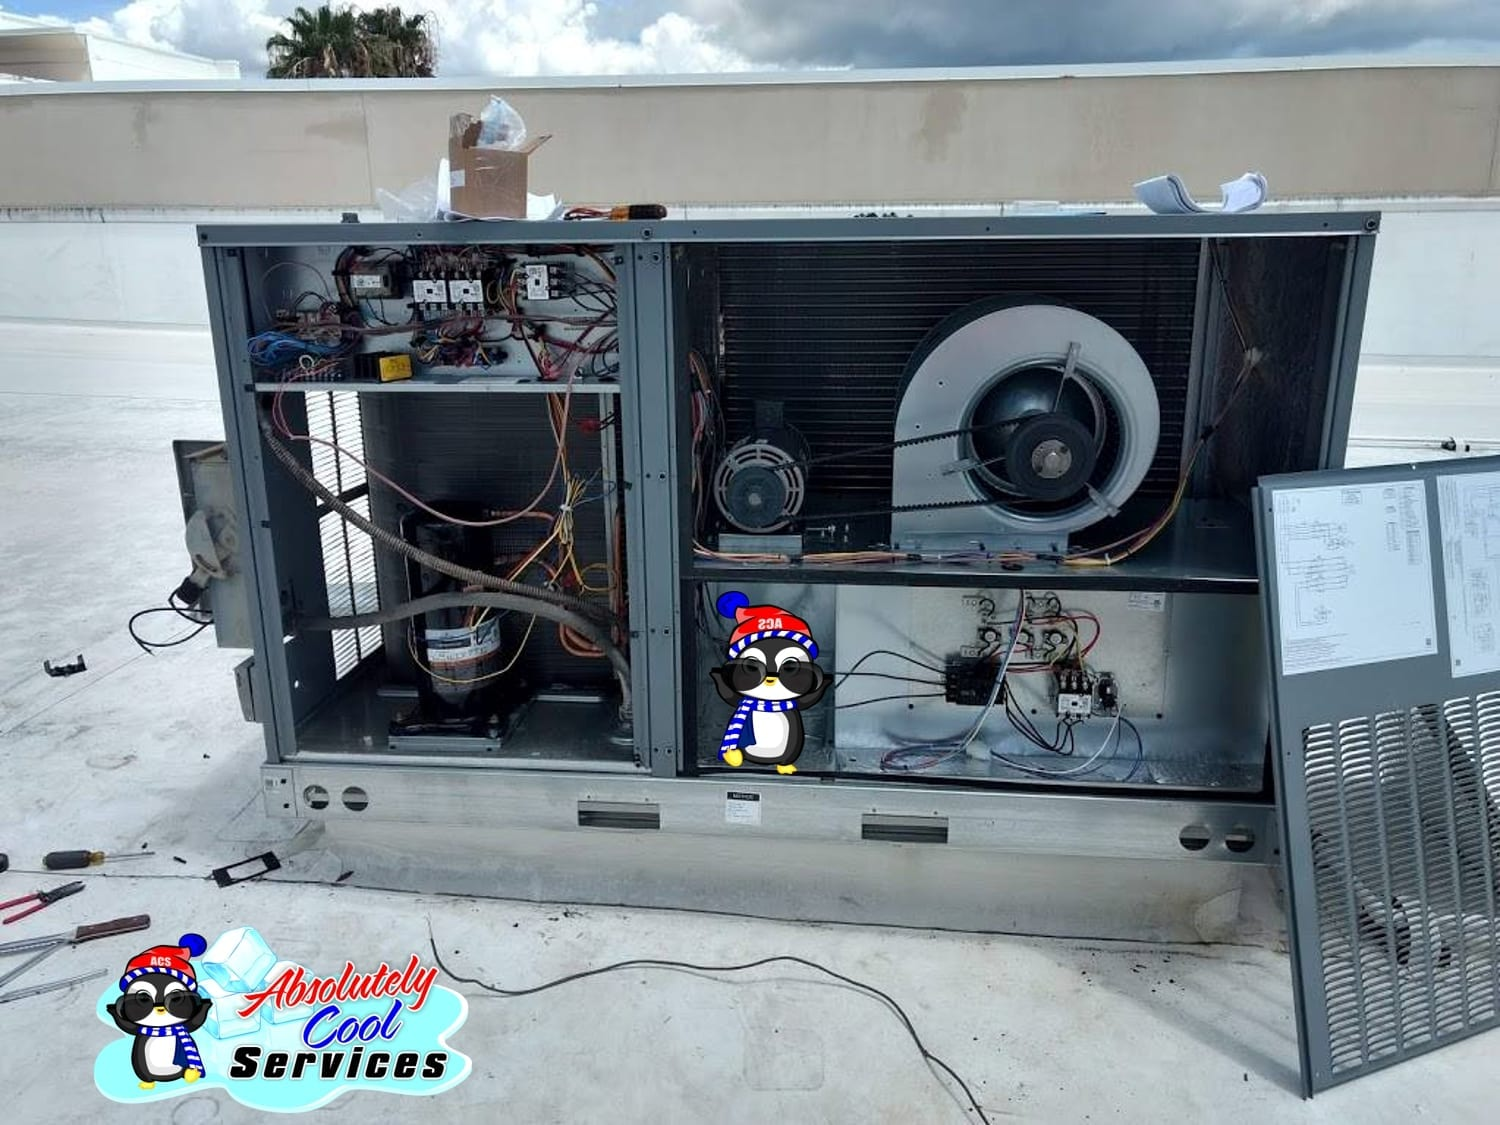 Roof Air Conditioning | HVAC Repair Service near Palm Beach Gardens